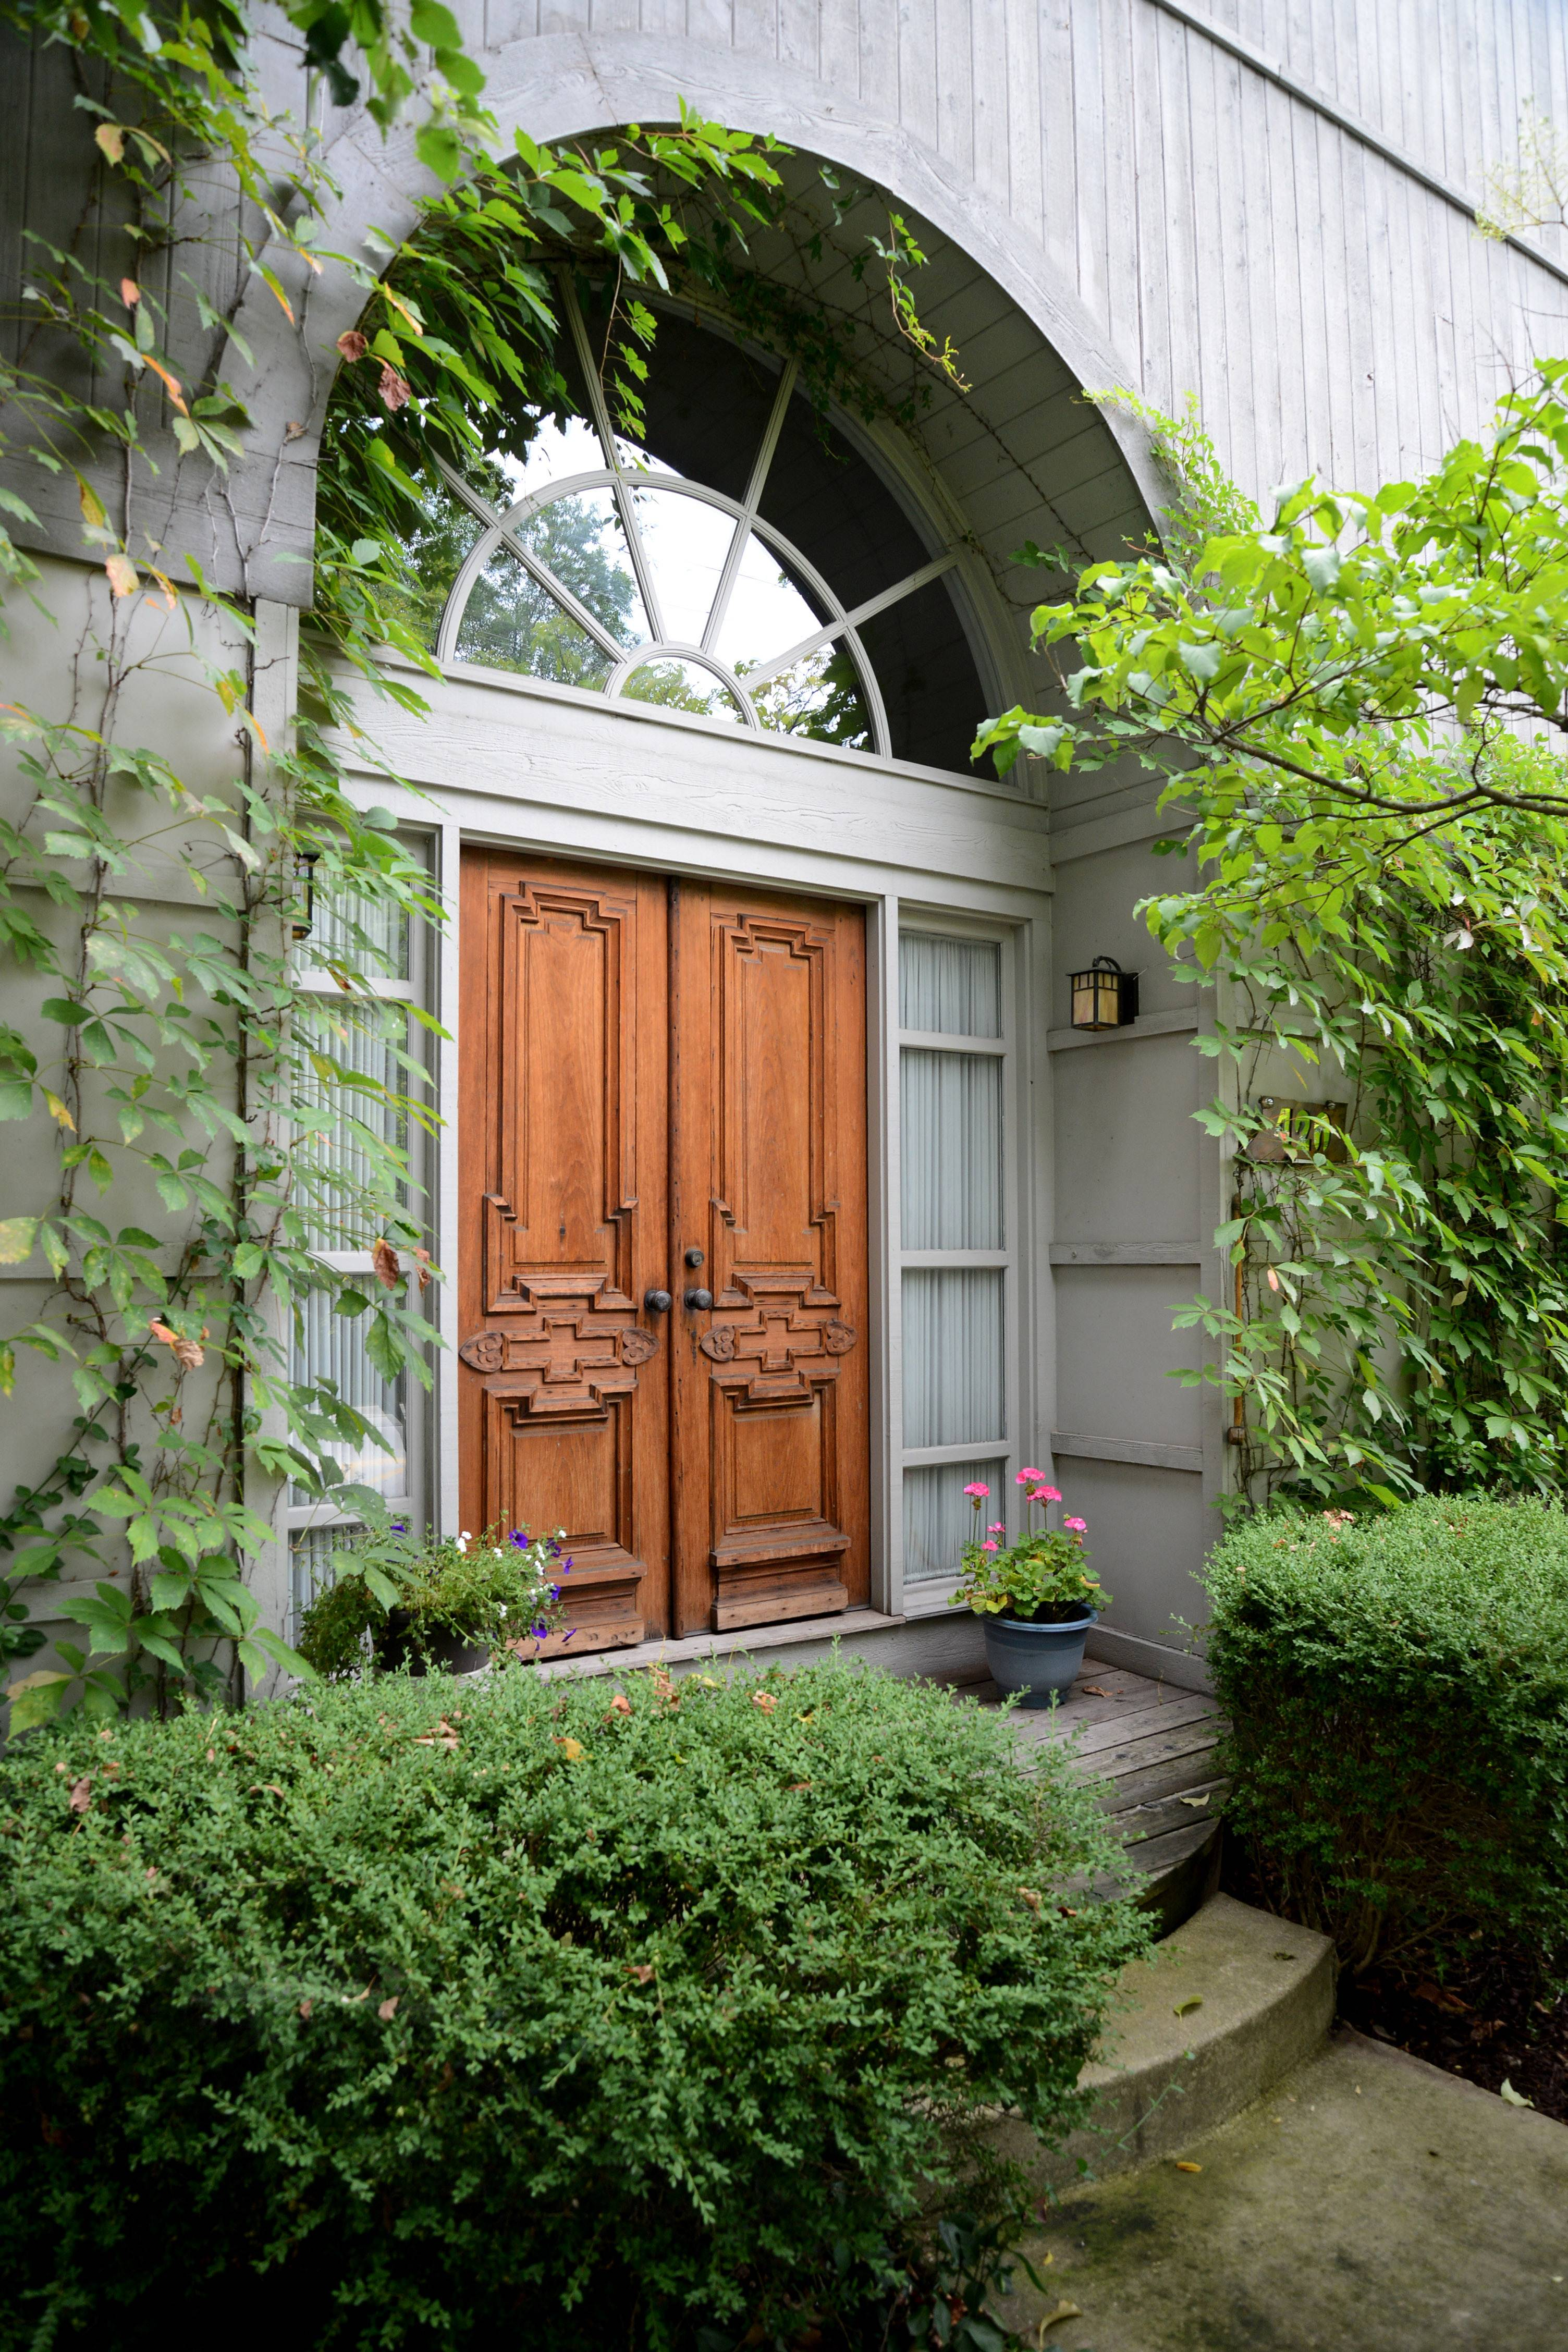 The front doors to the Daniel home were salvaged from a 1860s house in Elburn.